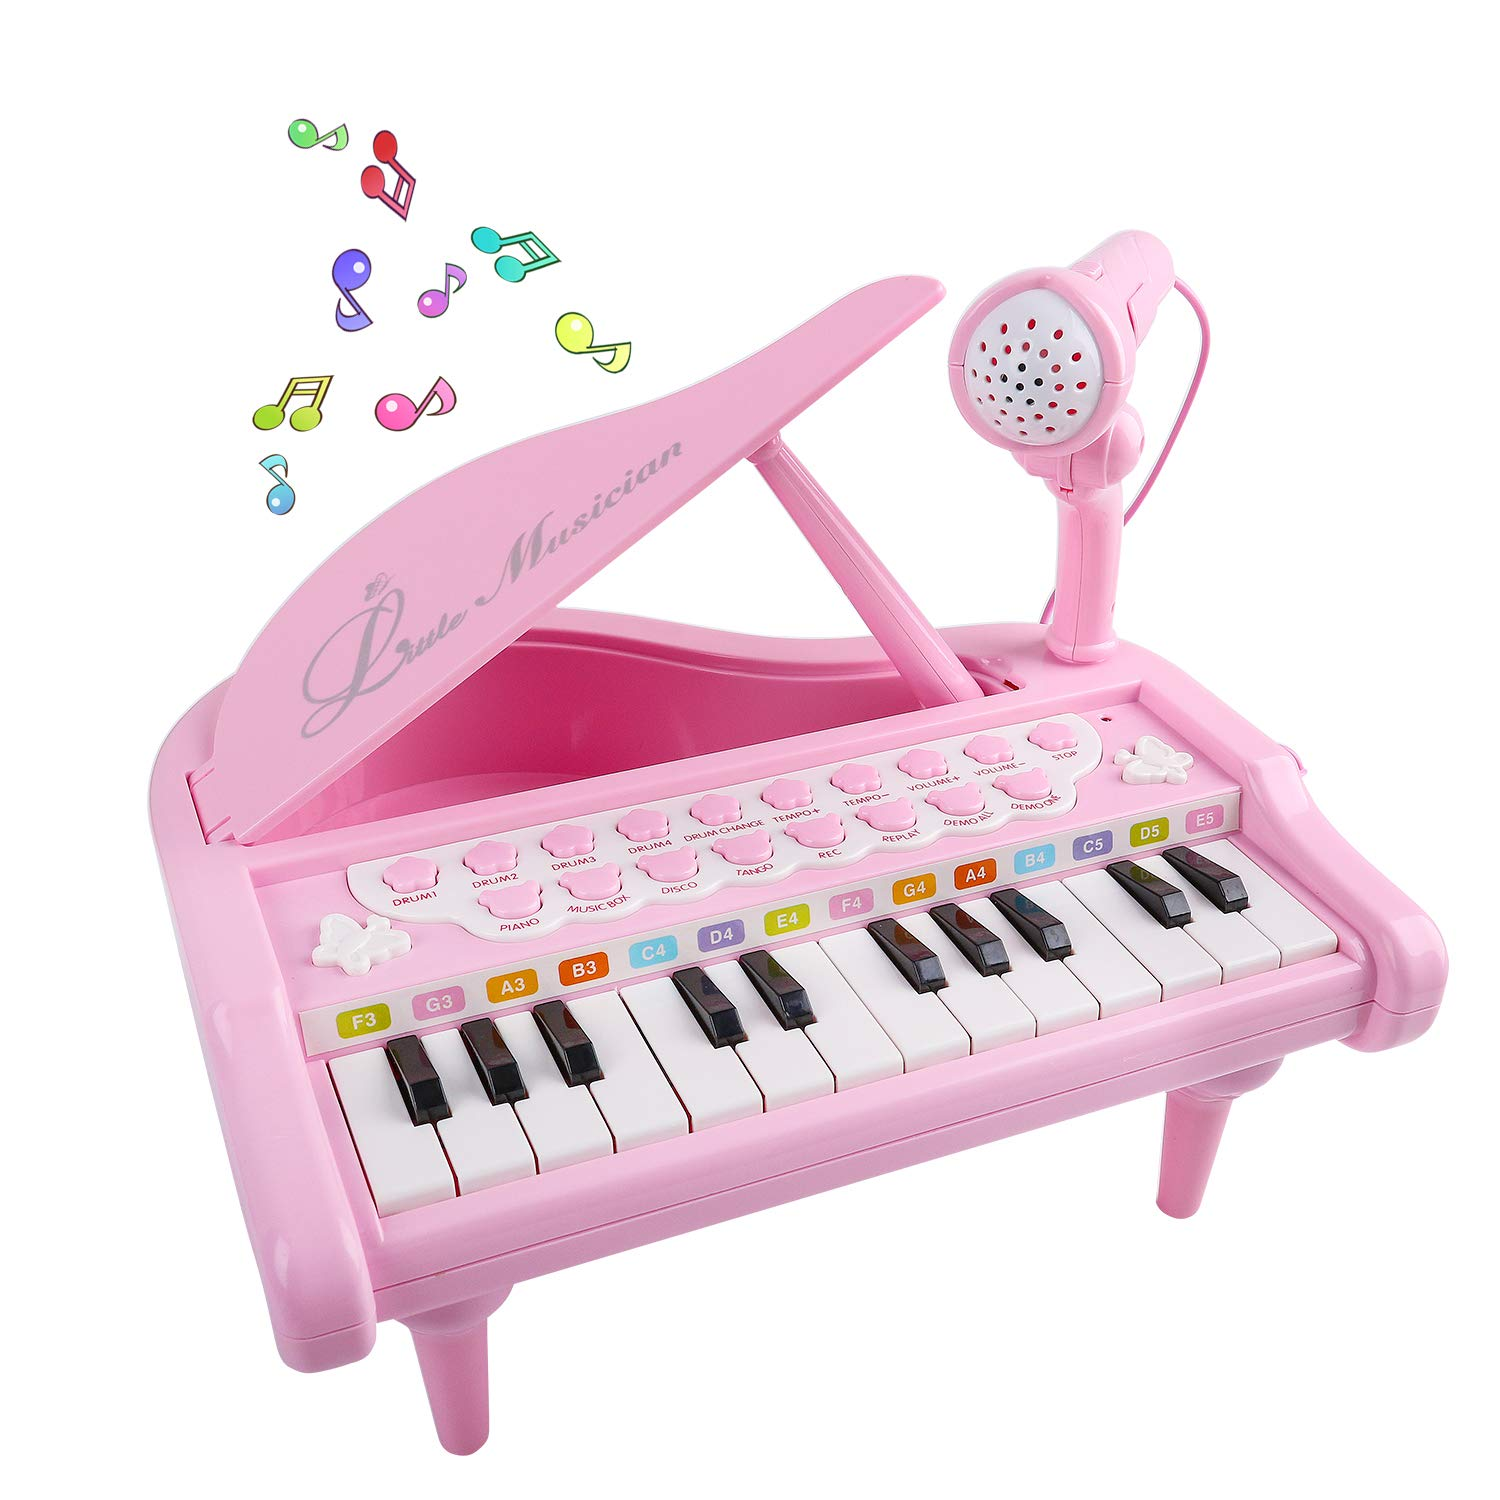 M SANMERSEN Piano Keyboard Toys for Kids, Birthday Gift 1 2 3 4 Year Old Girls 24 Key Piano Music Learning Keyboard Toys with Microphone Pink